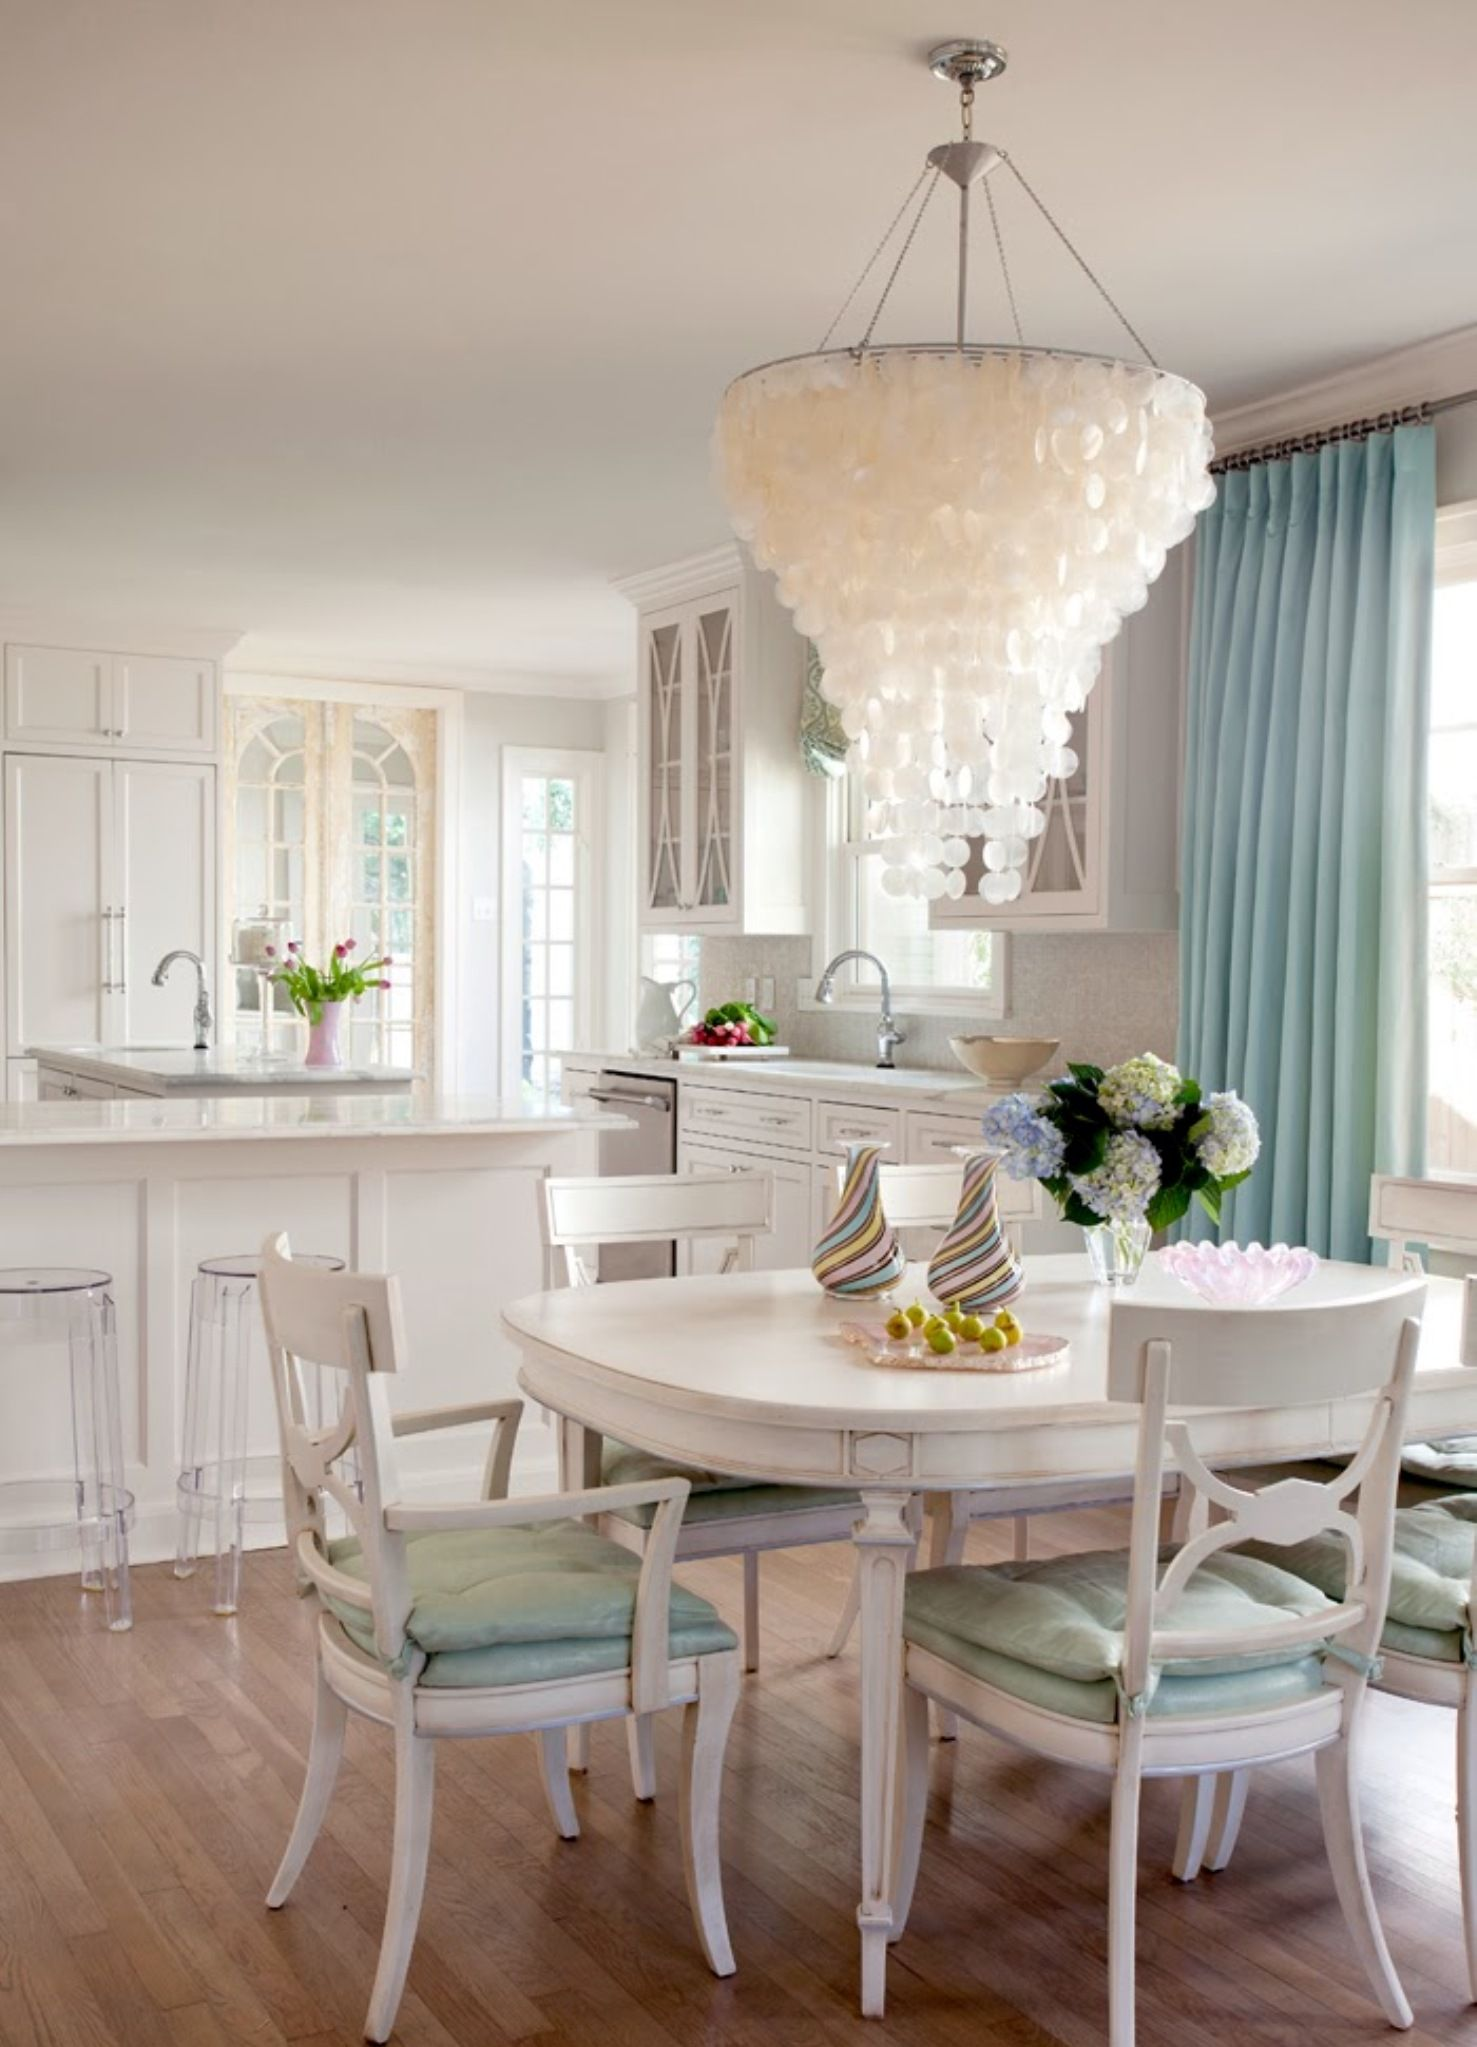 Kitchen Chandelier Lighting Lighting Capiz Shell Chandelier Lighting Fixtures Country